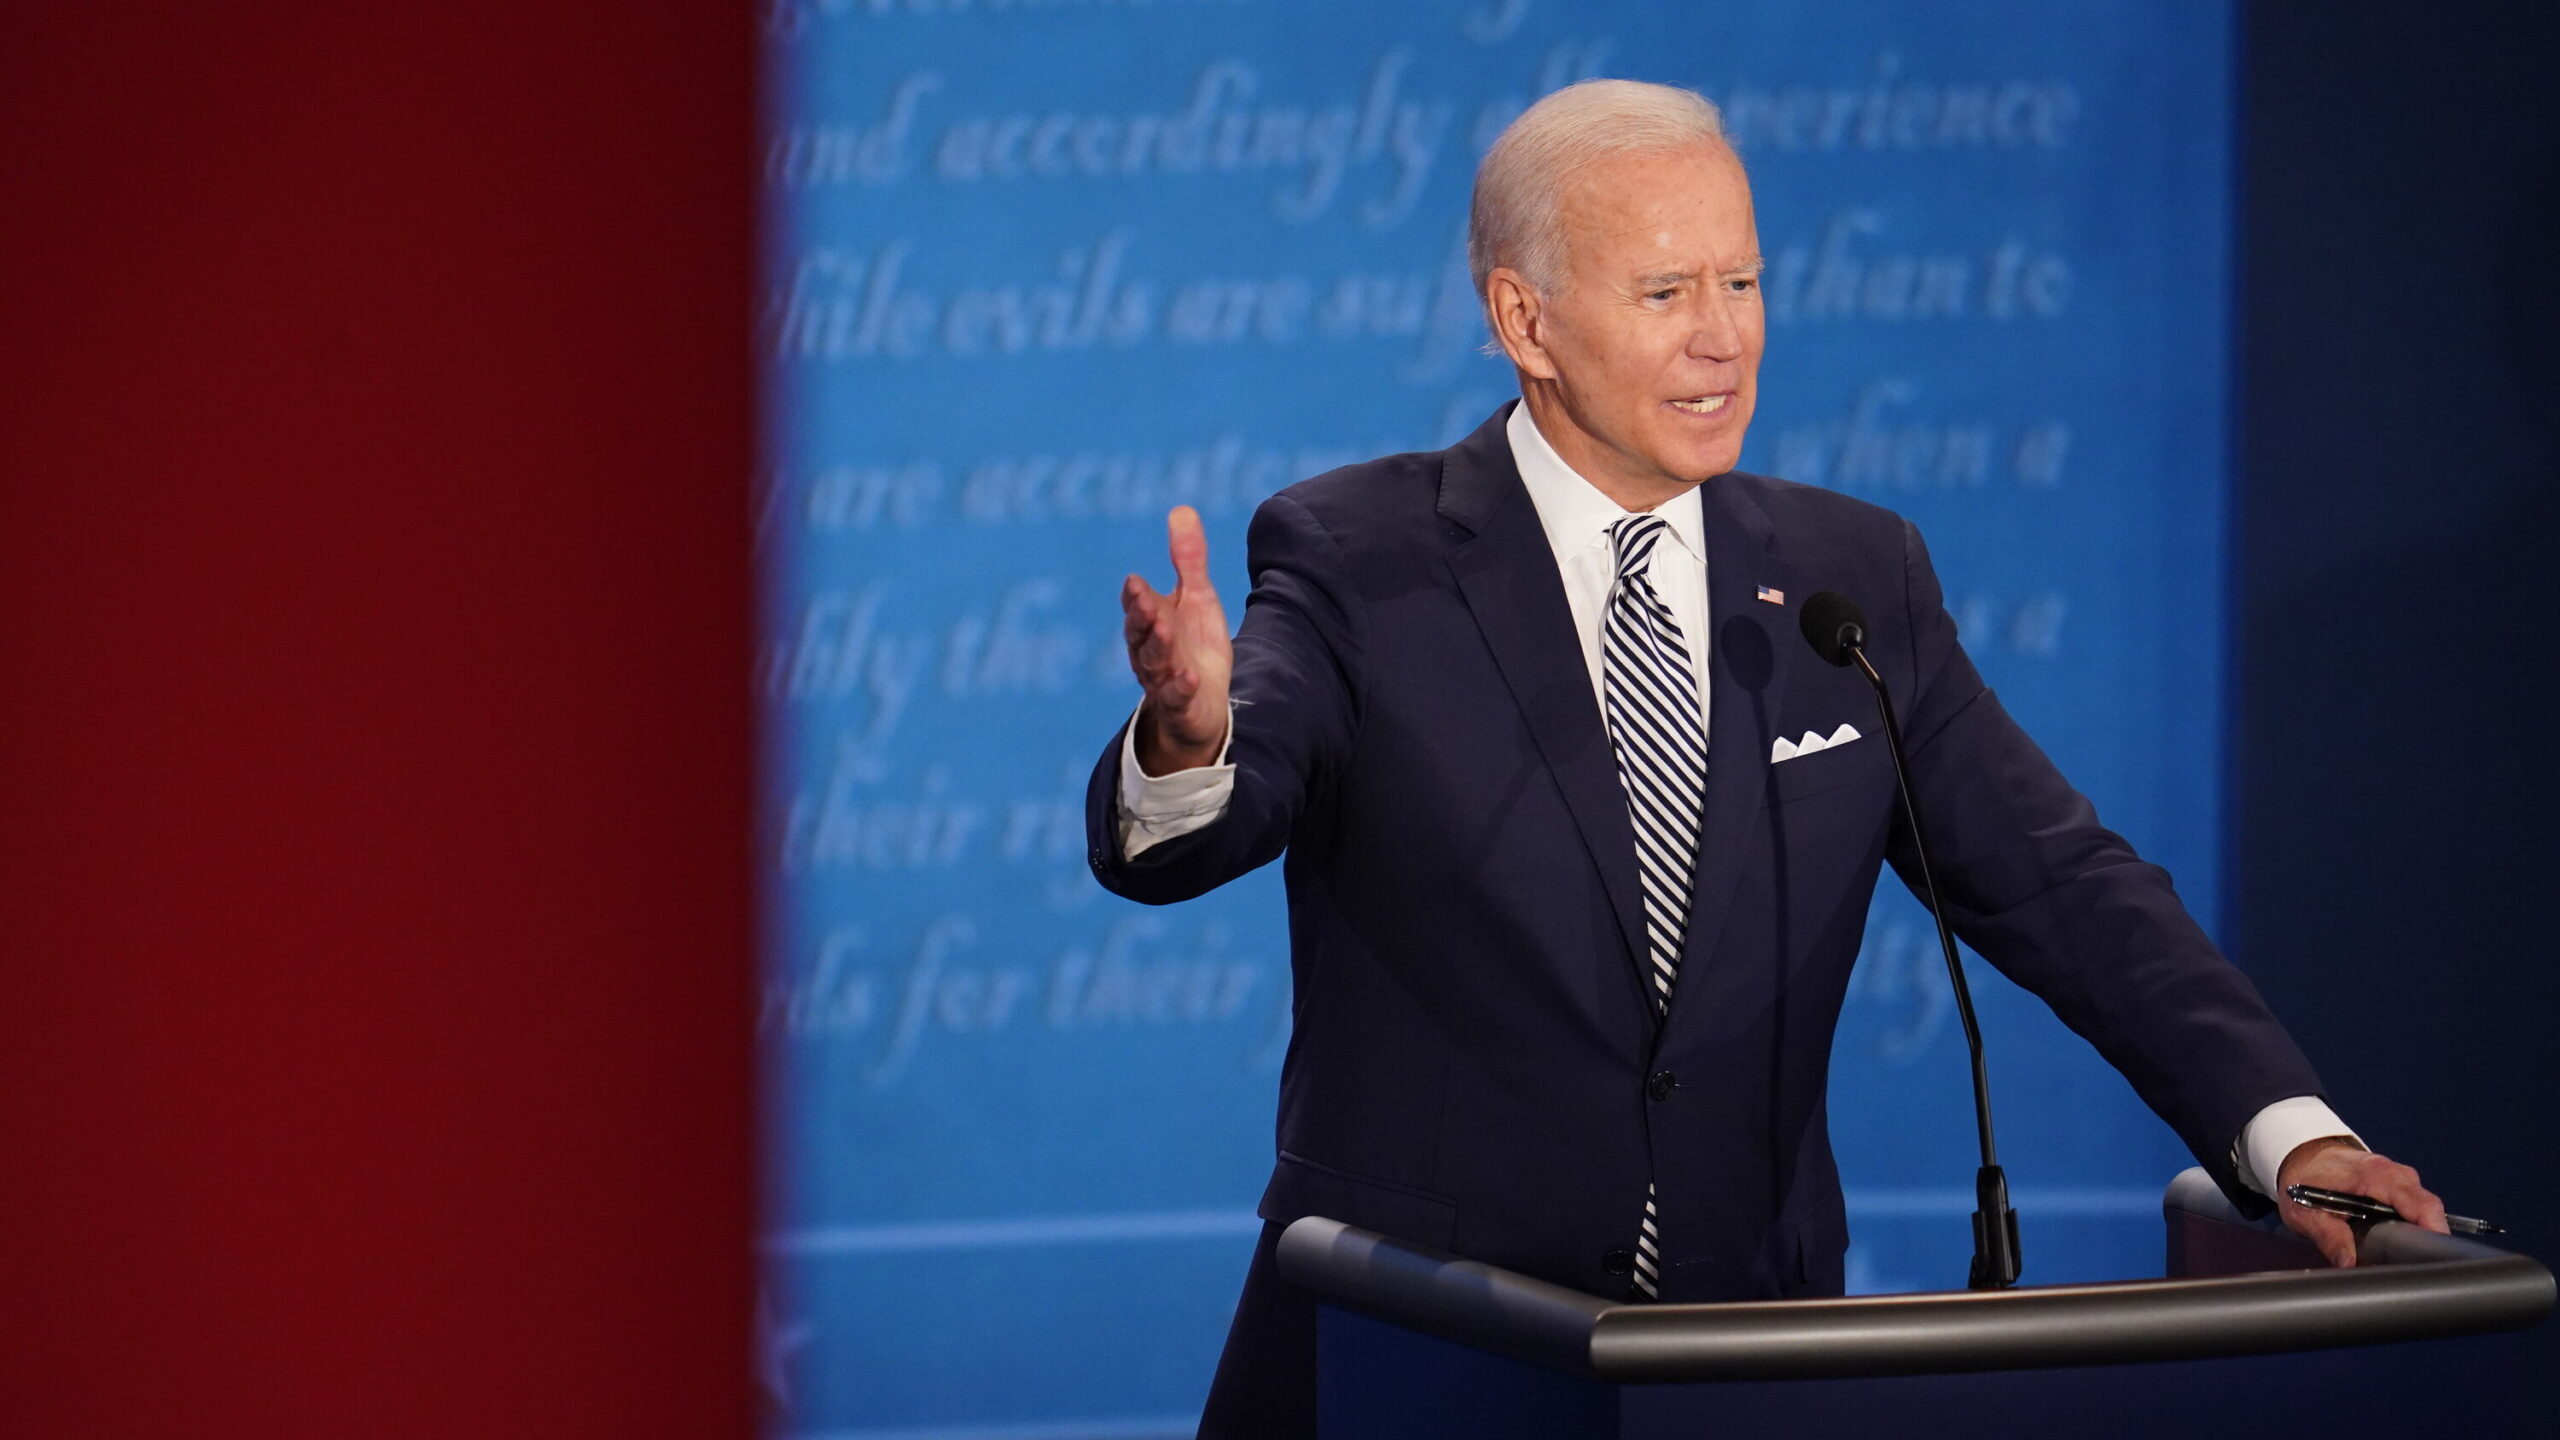 Watch 4 Key Moments From Biden at the First 2020 Debate